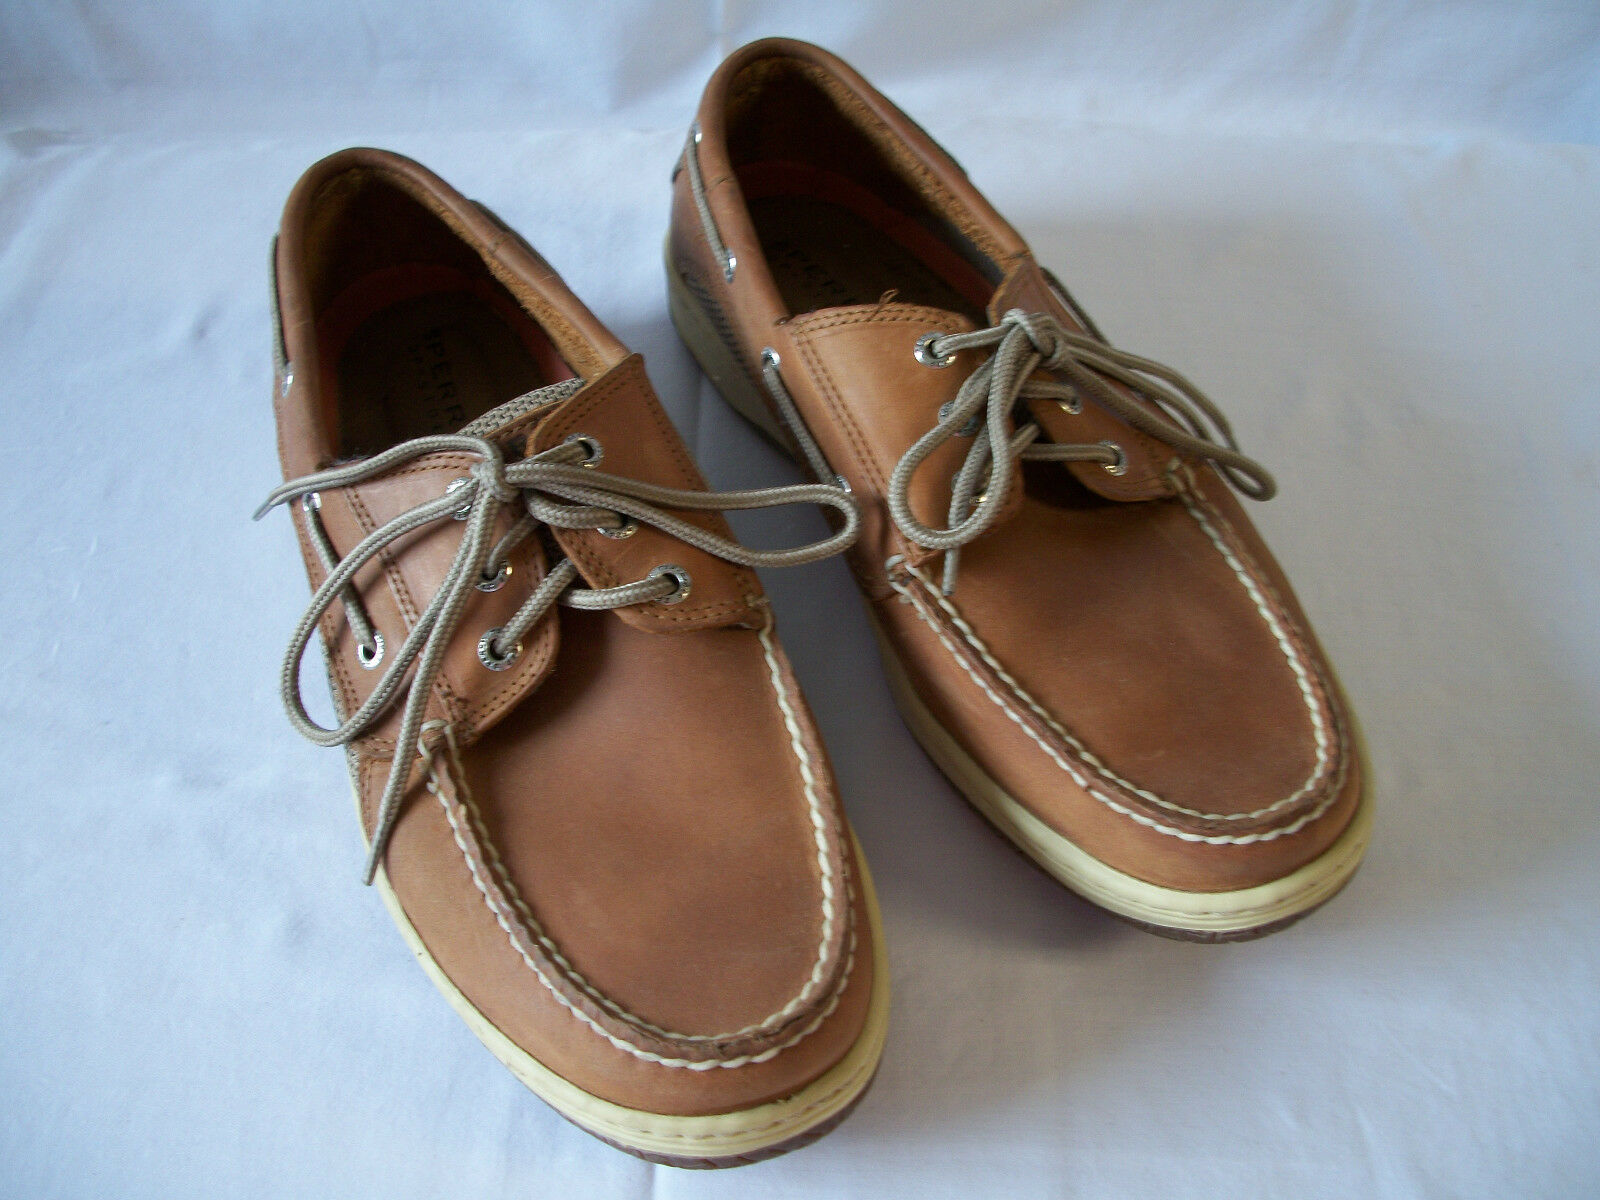 Sperry Topsider Mens 3 Eye Boat shoes 10.5 M EUC